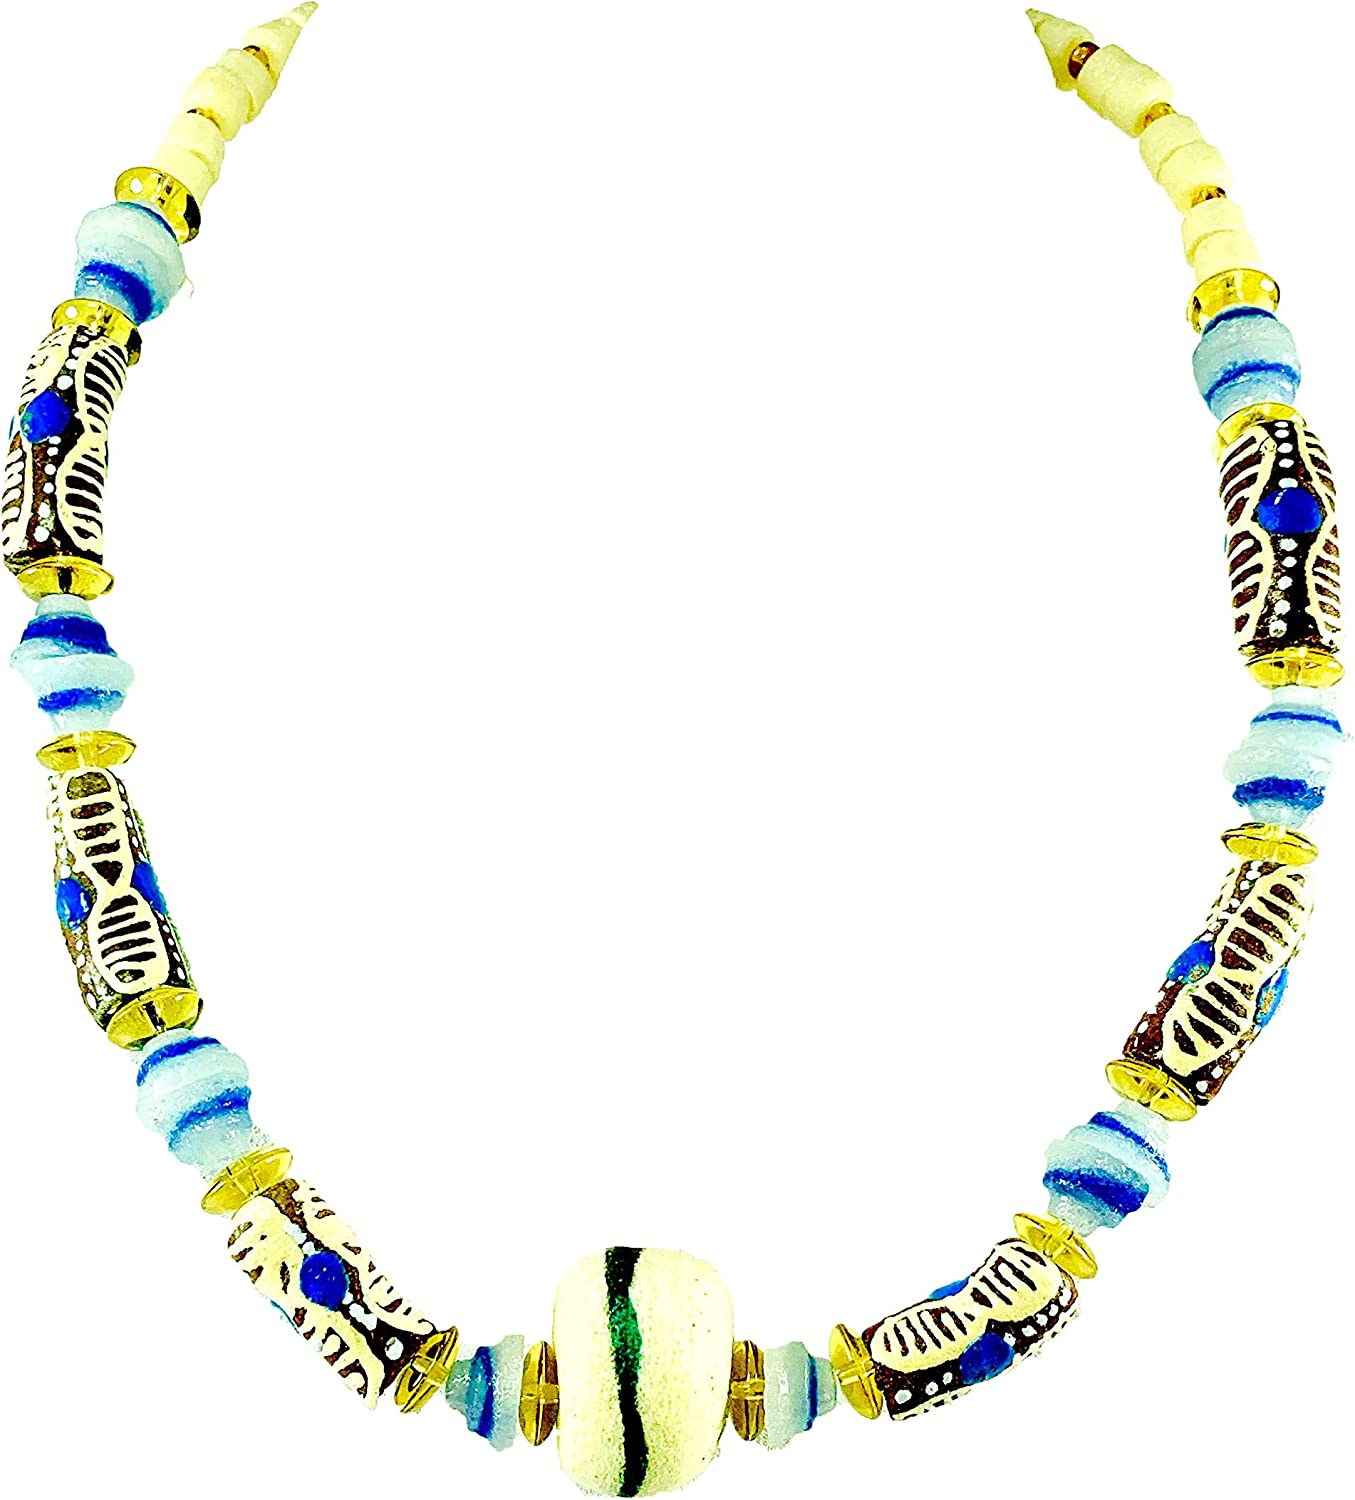 Sophia Dor Himba Glass Bead Necklace with Bracelet and Earrings Set